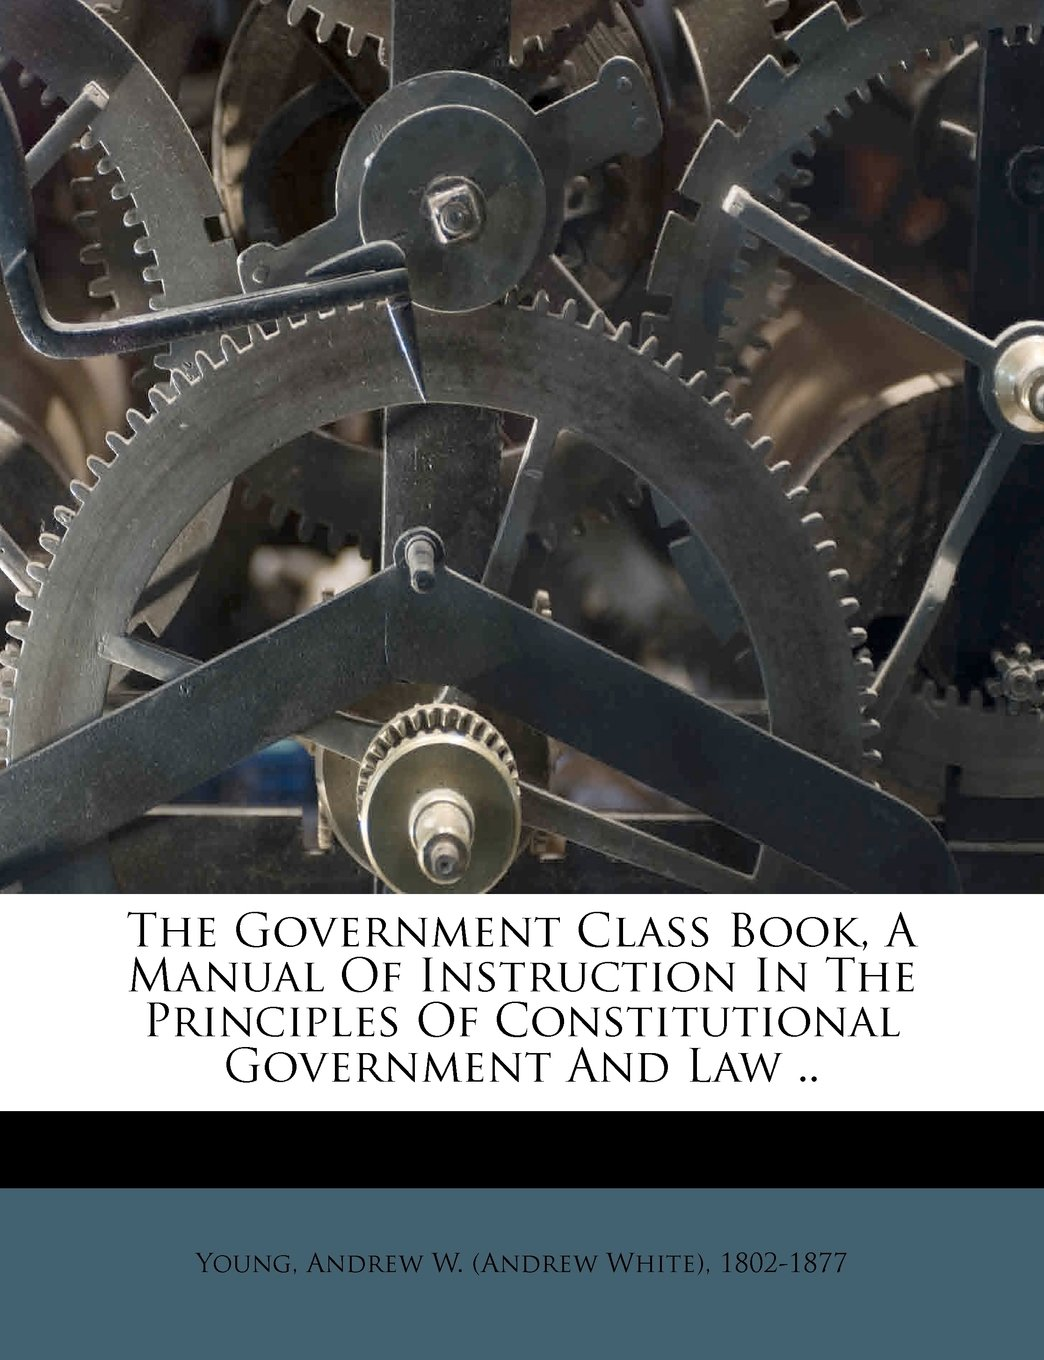 The government class book, a manual of instruction in the principles of  constitutional government and law ..: Andrew W. (Andrew White) 1802-18  Young: ...